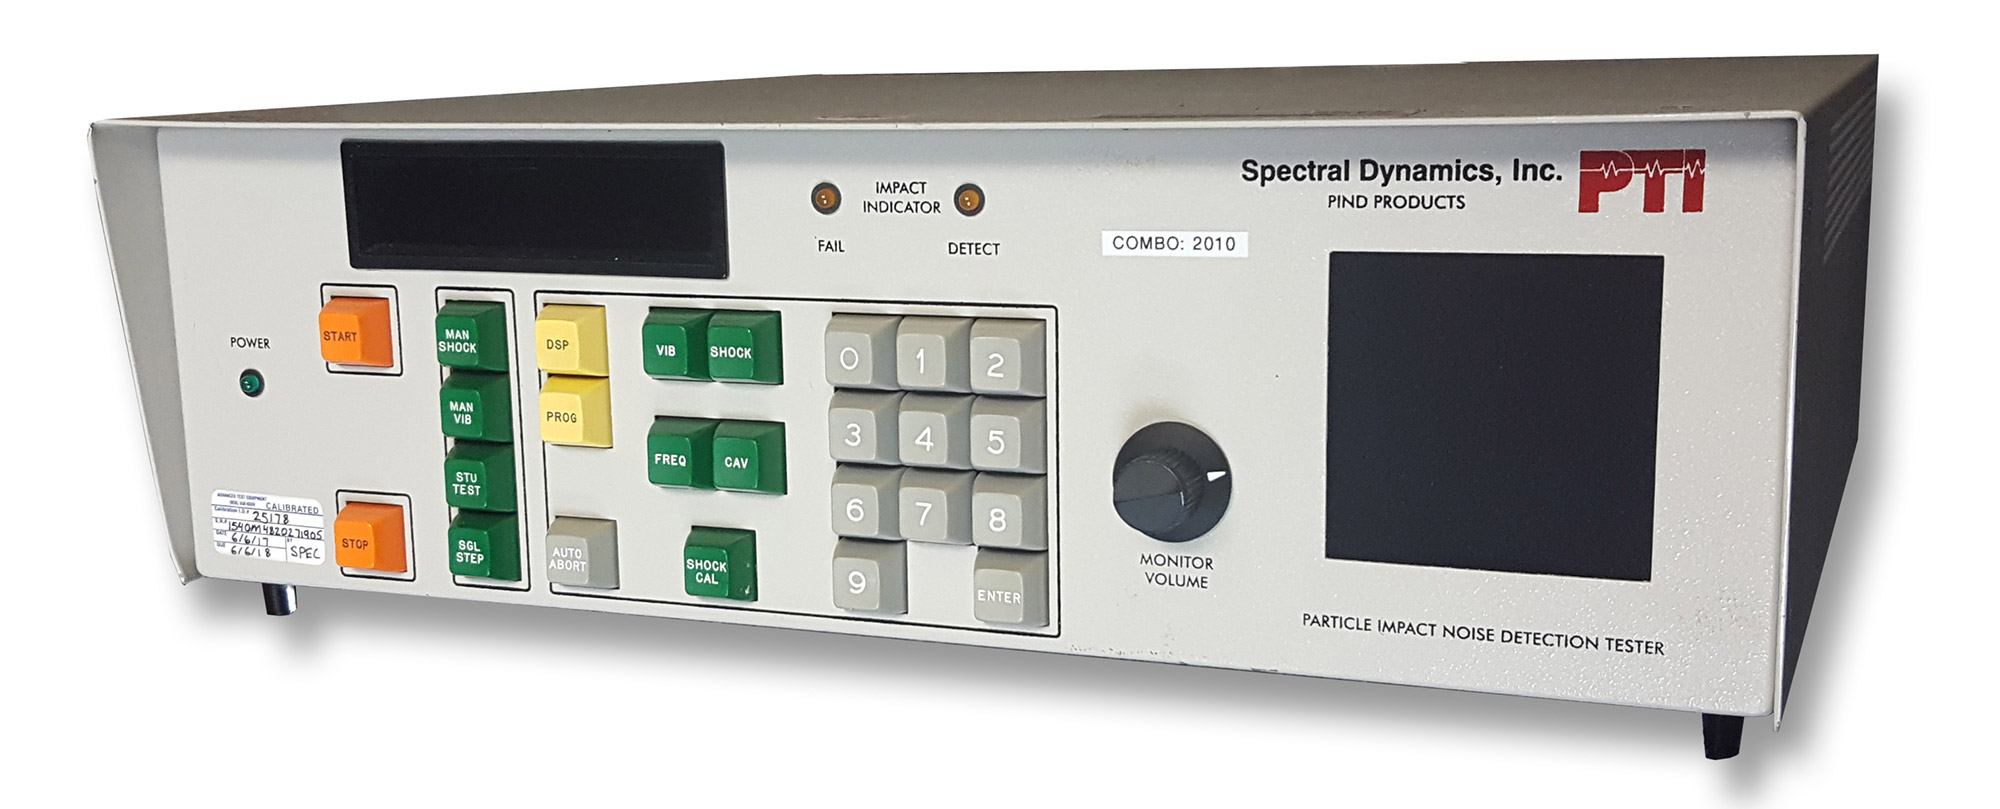 Spectral Dynamics (Dunegan/Endevco) 4511M Particle Impact Noise Detector System